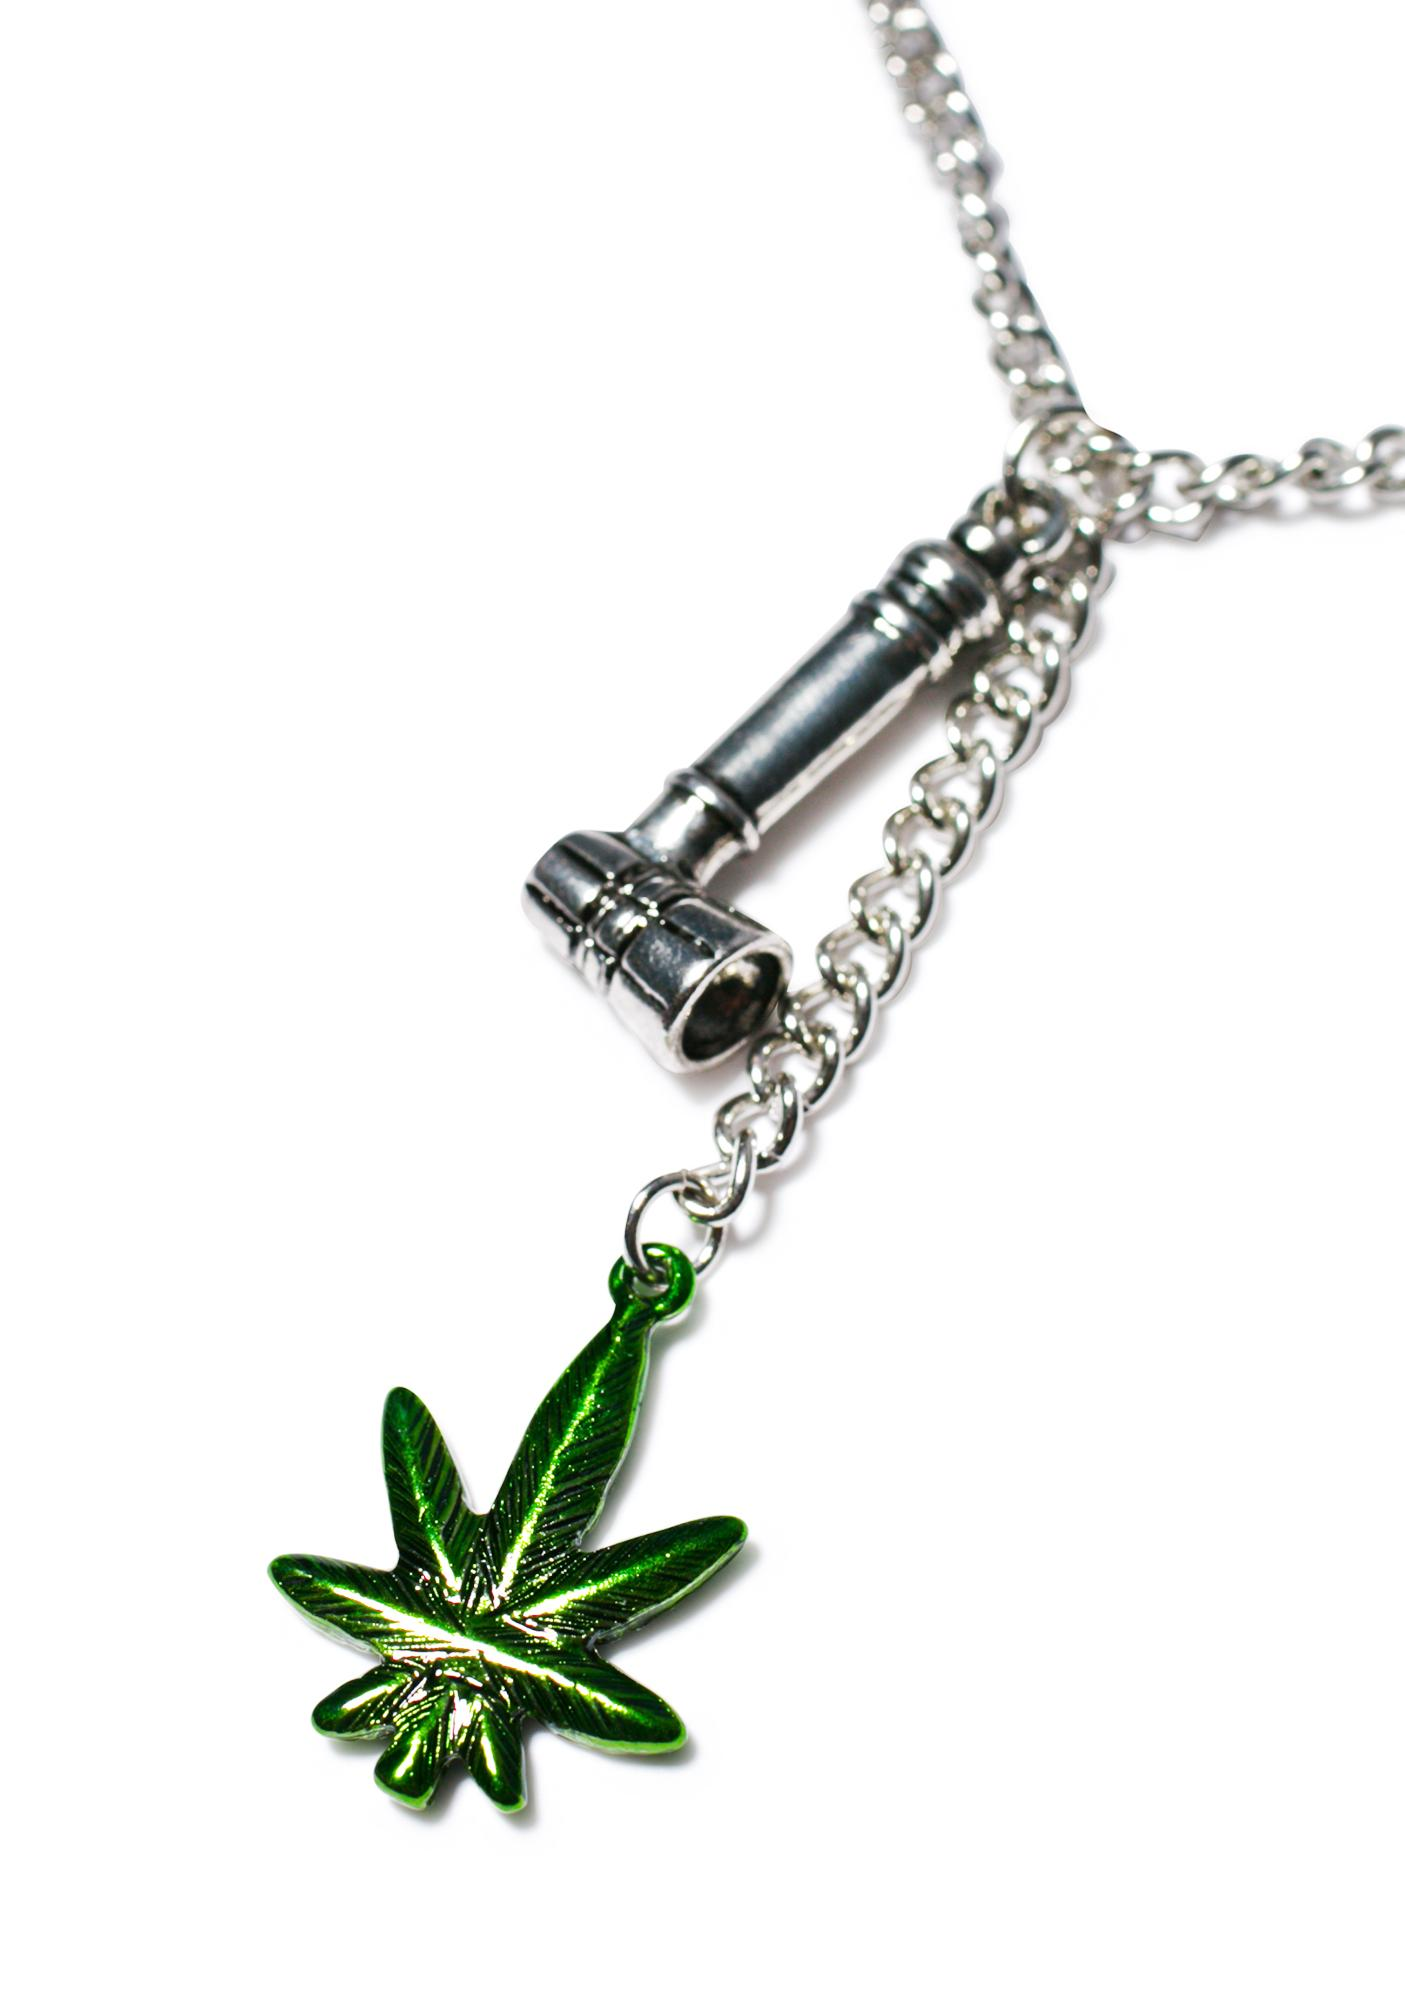 Poke Smot Necklace